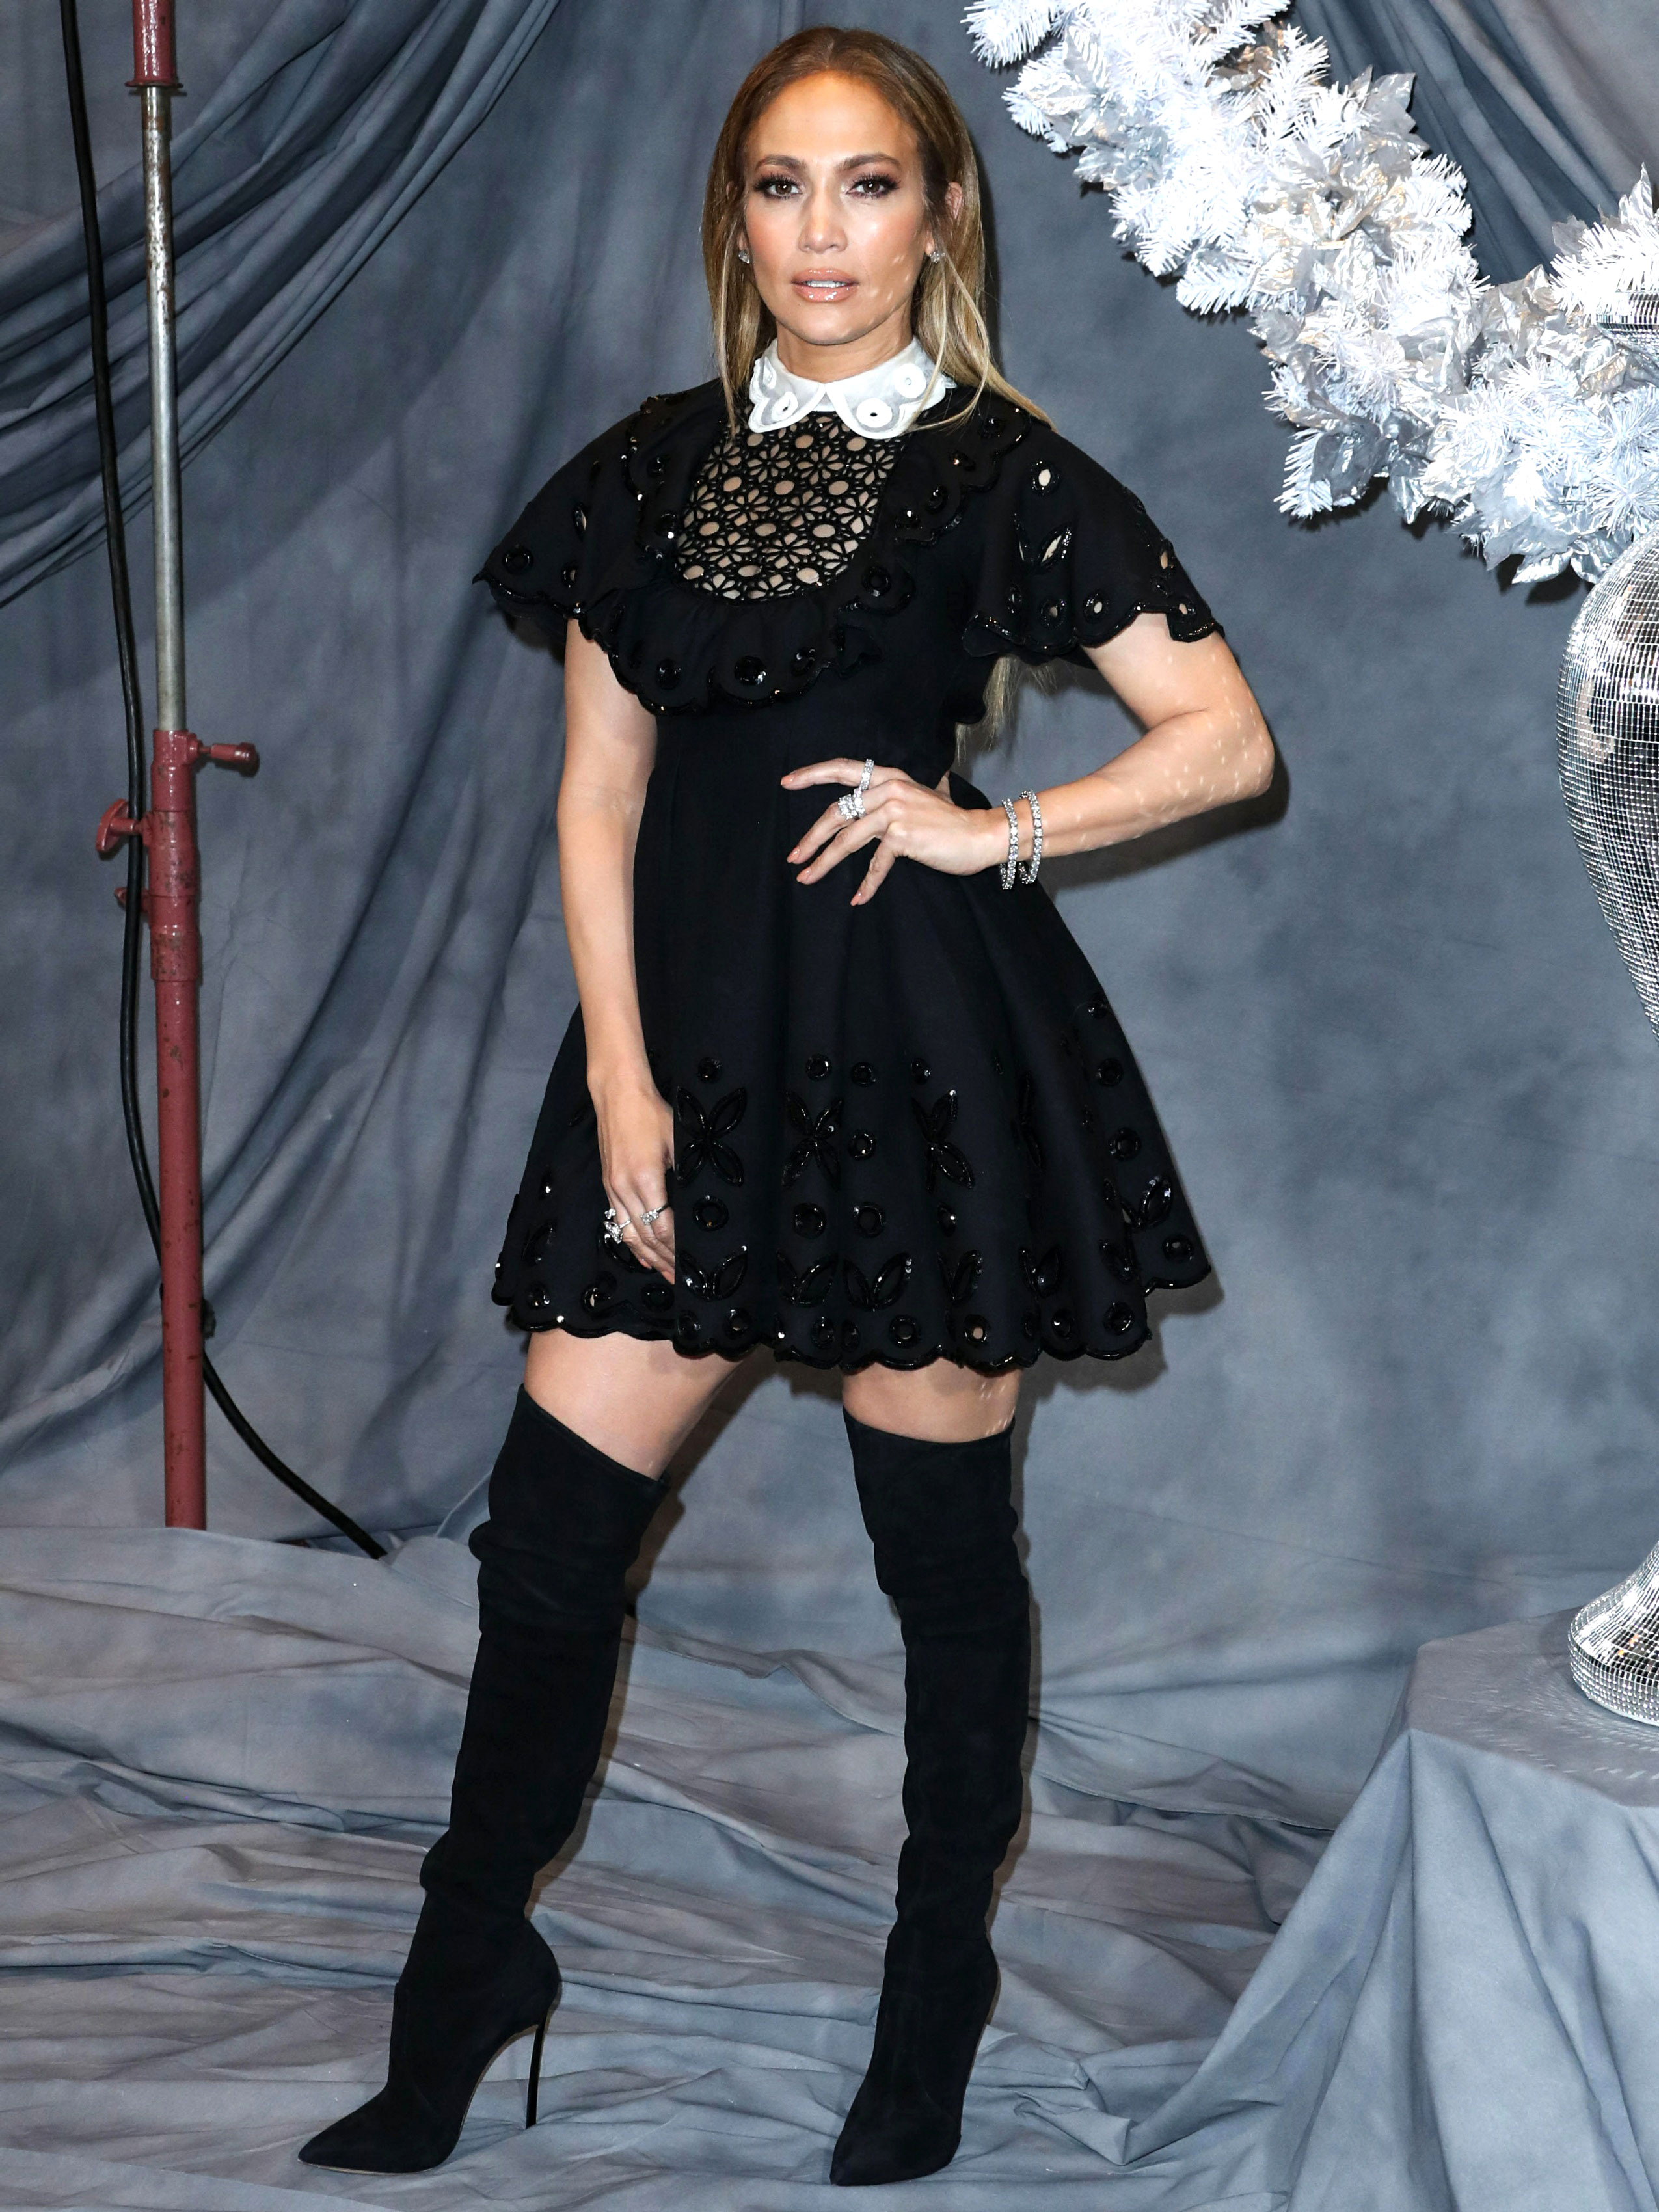 jennifer-lopez-Second-Act-press - Kicking off the press tour in L.A. on Sunday, December 9, the actress showed some leg in an embellished Valentino mini and Casadei over-the-knee boots.